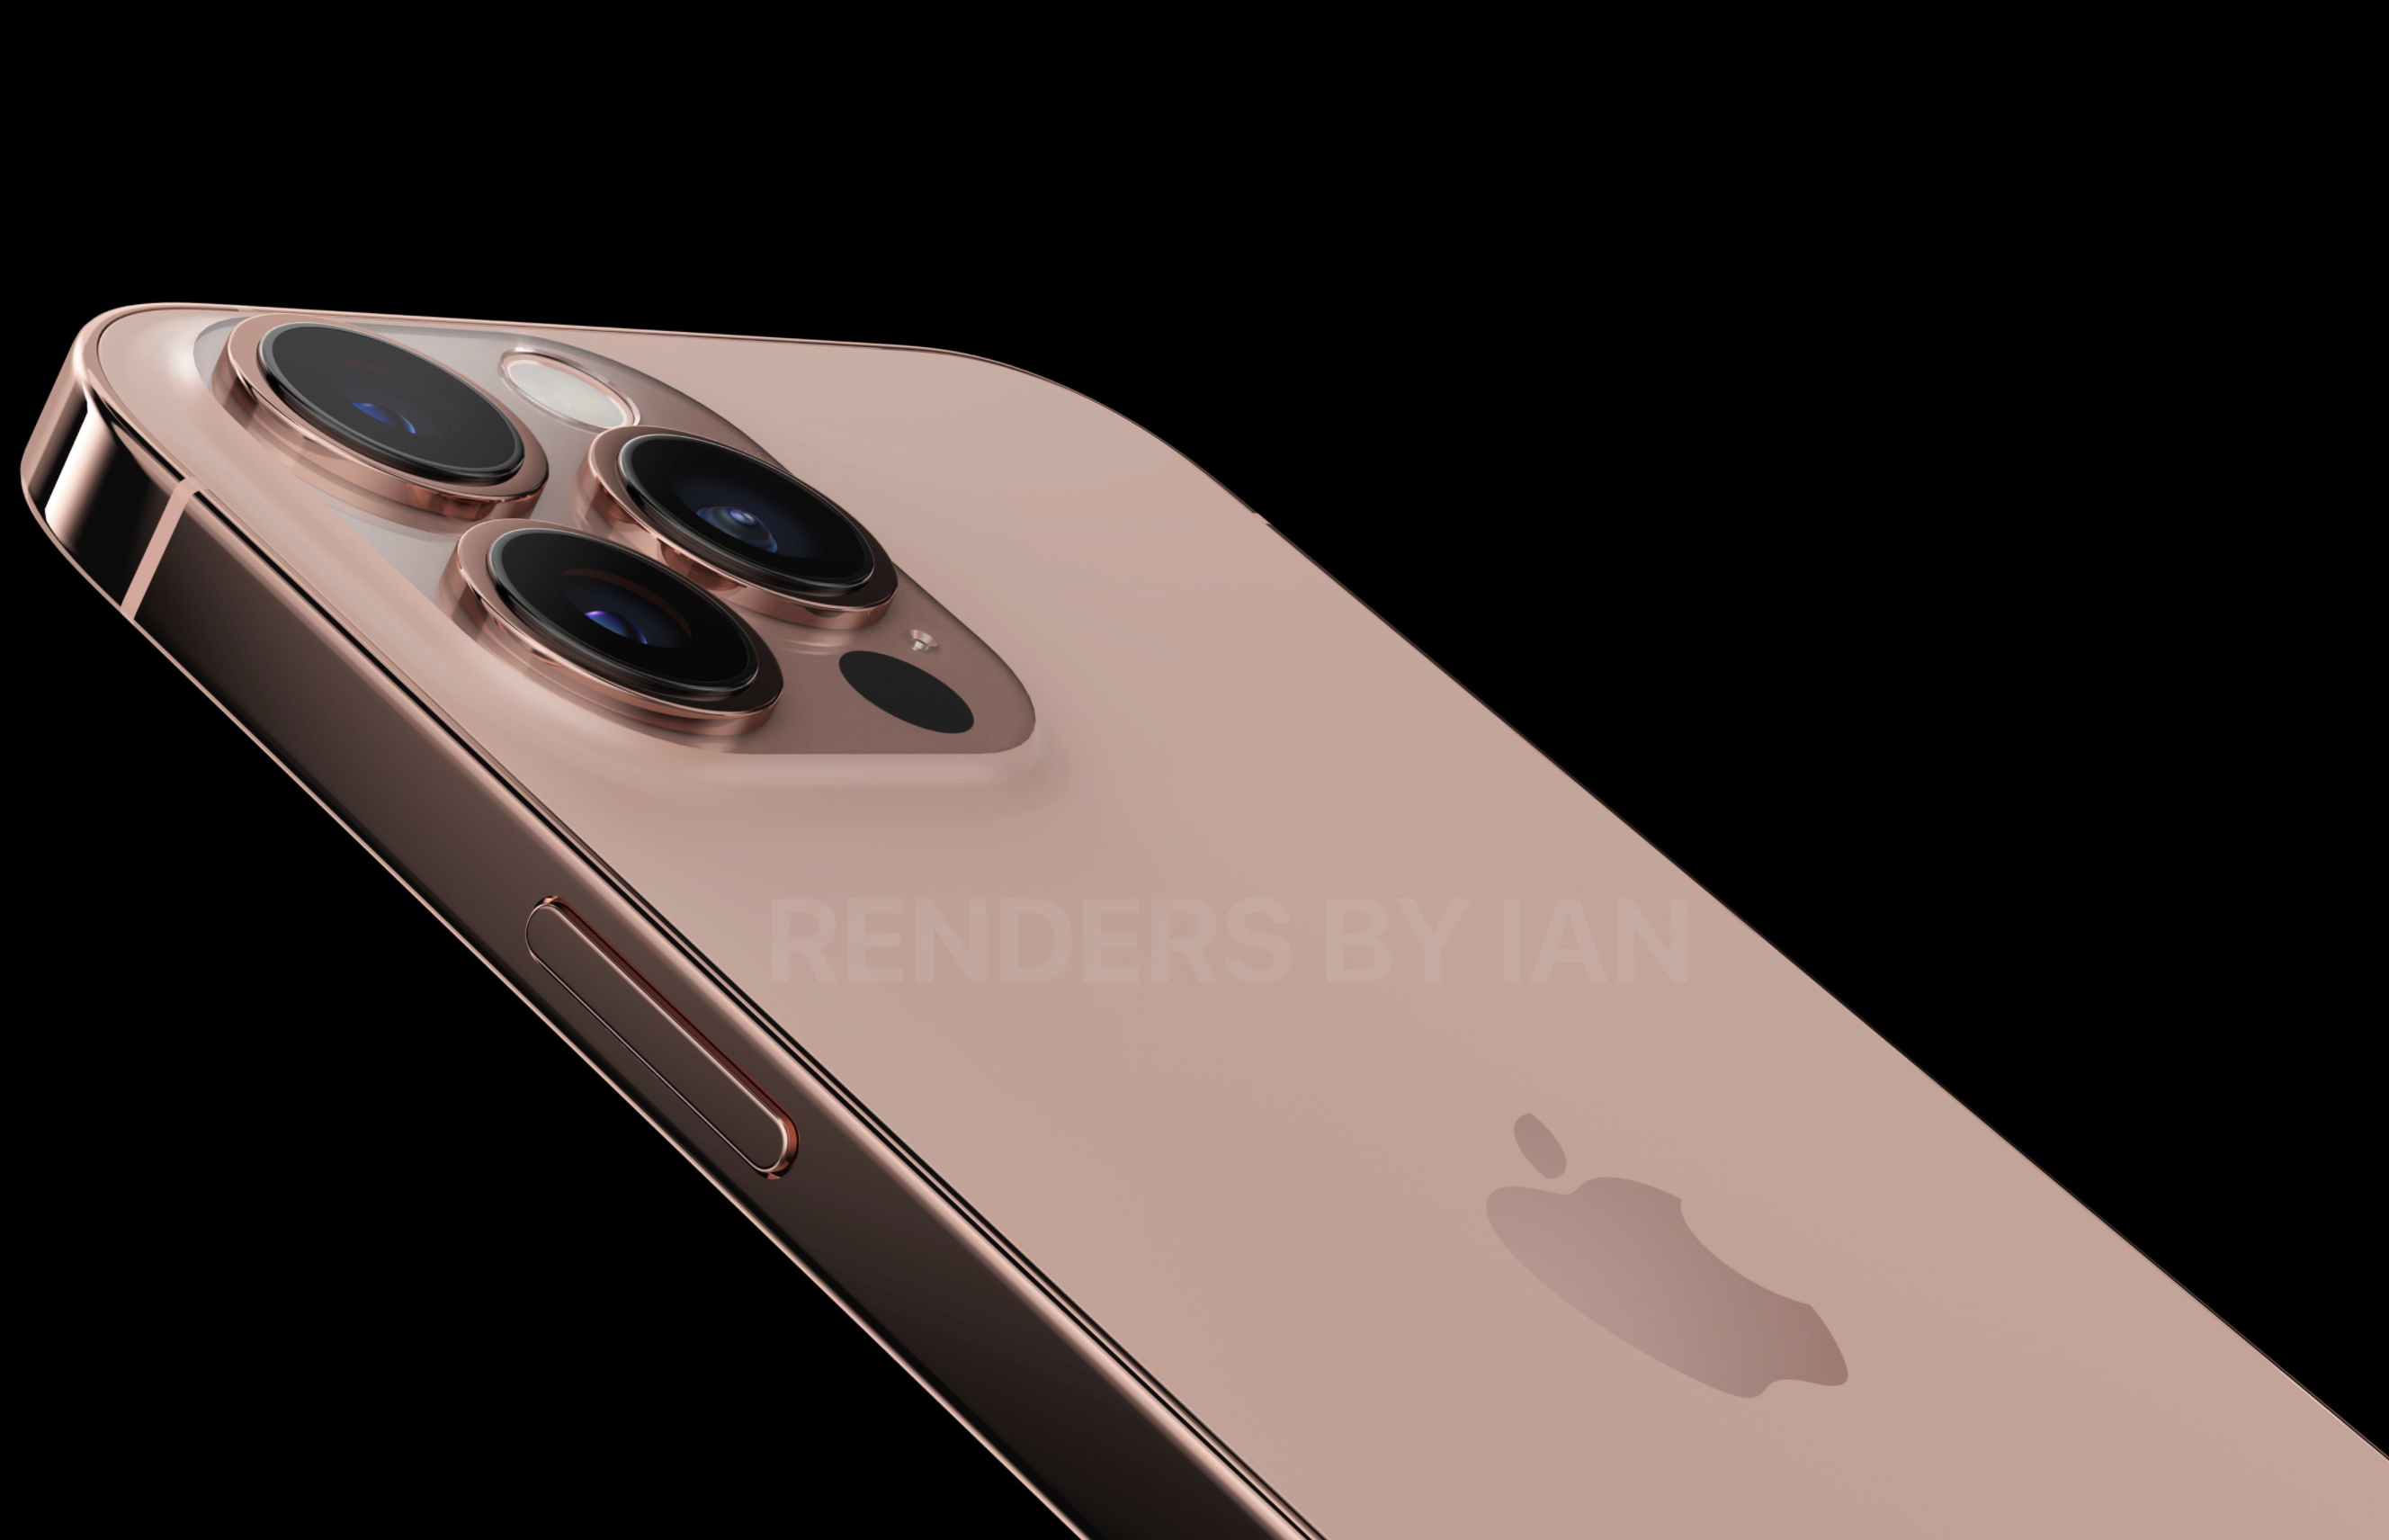 iPhone 13: Every exciting